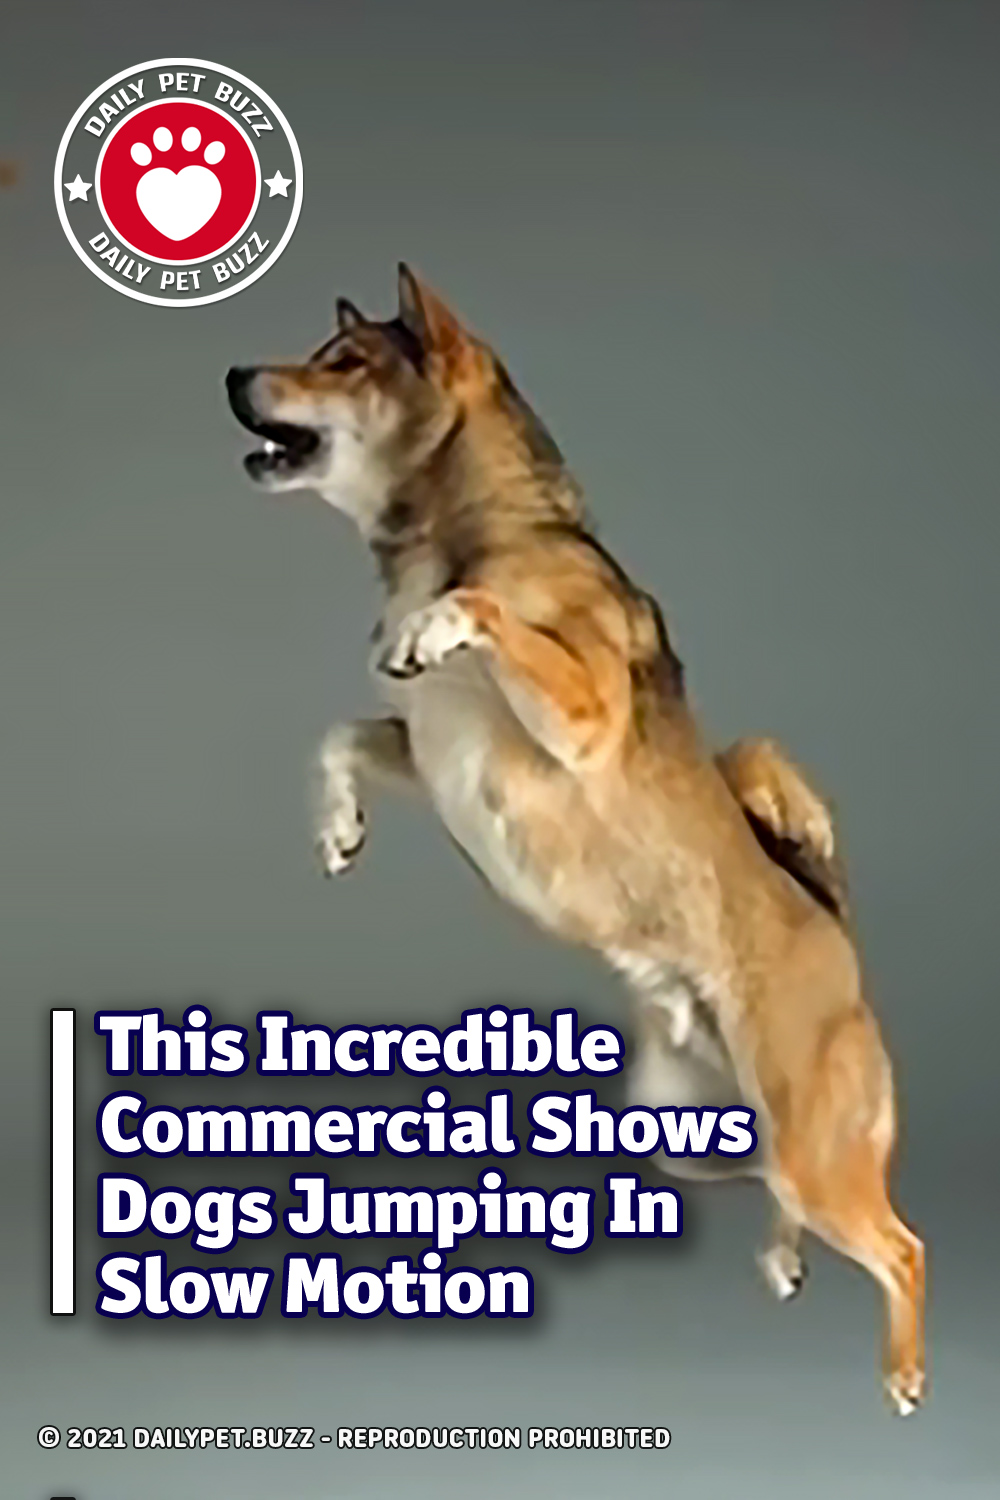 This Incredible Commercial Shows Dogs Jumping In Slow Motion